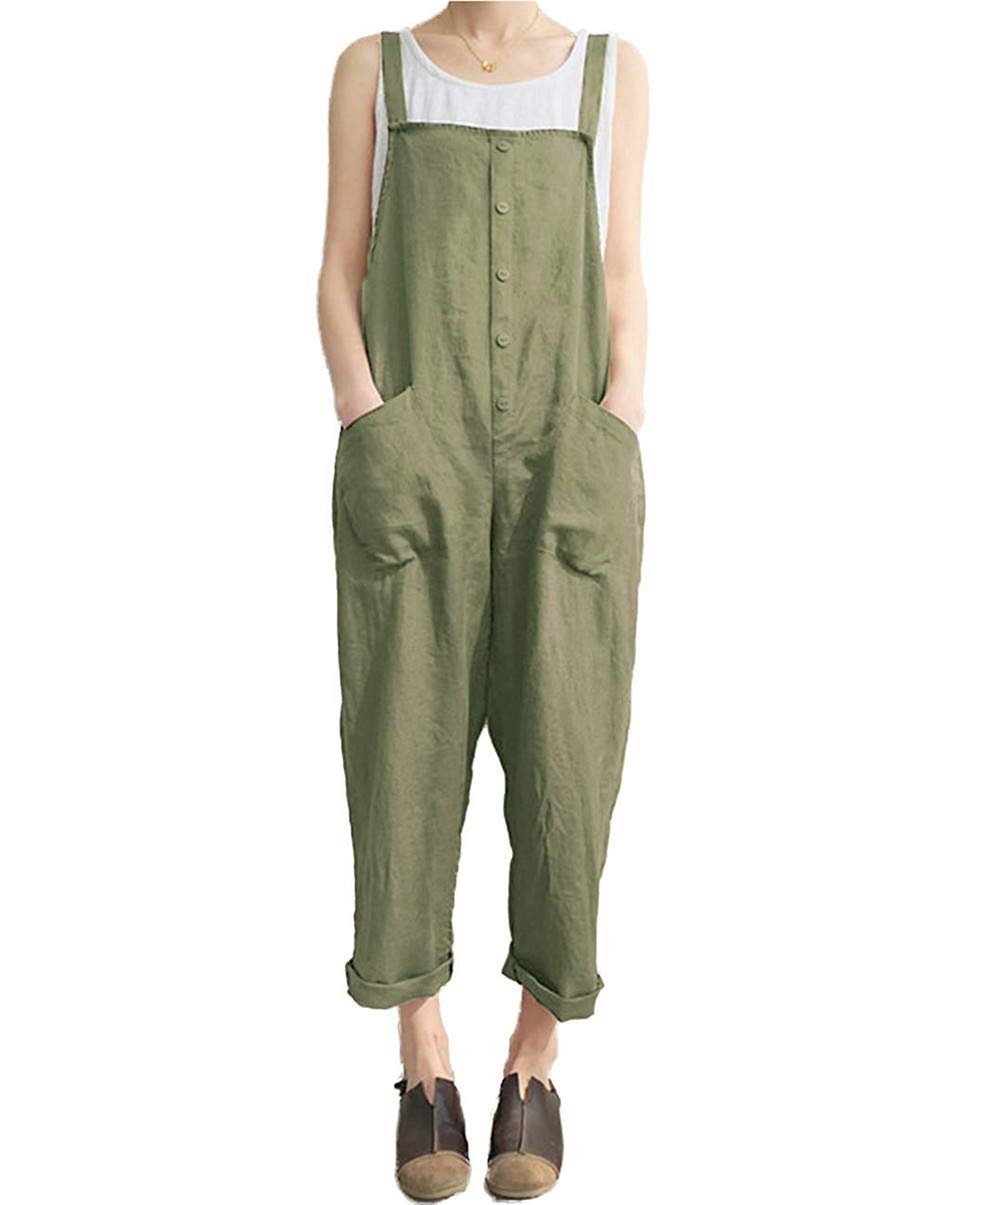 590248557fd Galleon - Women s Casual Jumpsuits Overalls Baggy Bib Pants Plus Size Wide  Leg Rompers (L